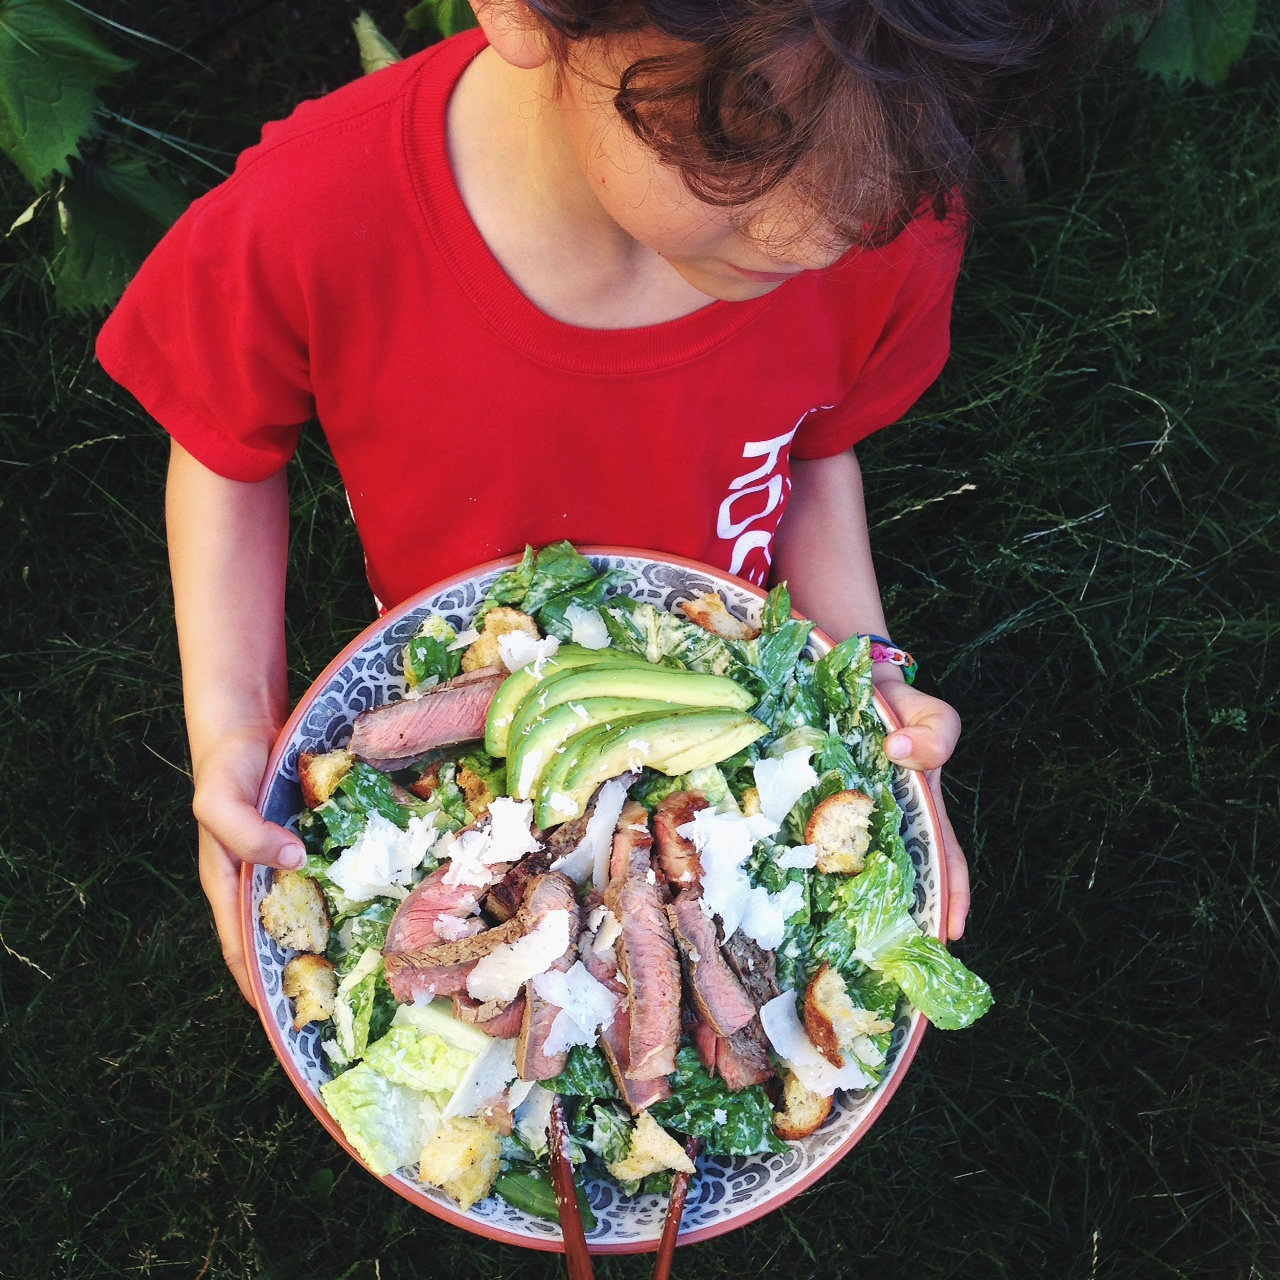 Boy holding a bowl of caesar salad